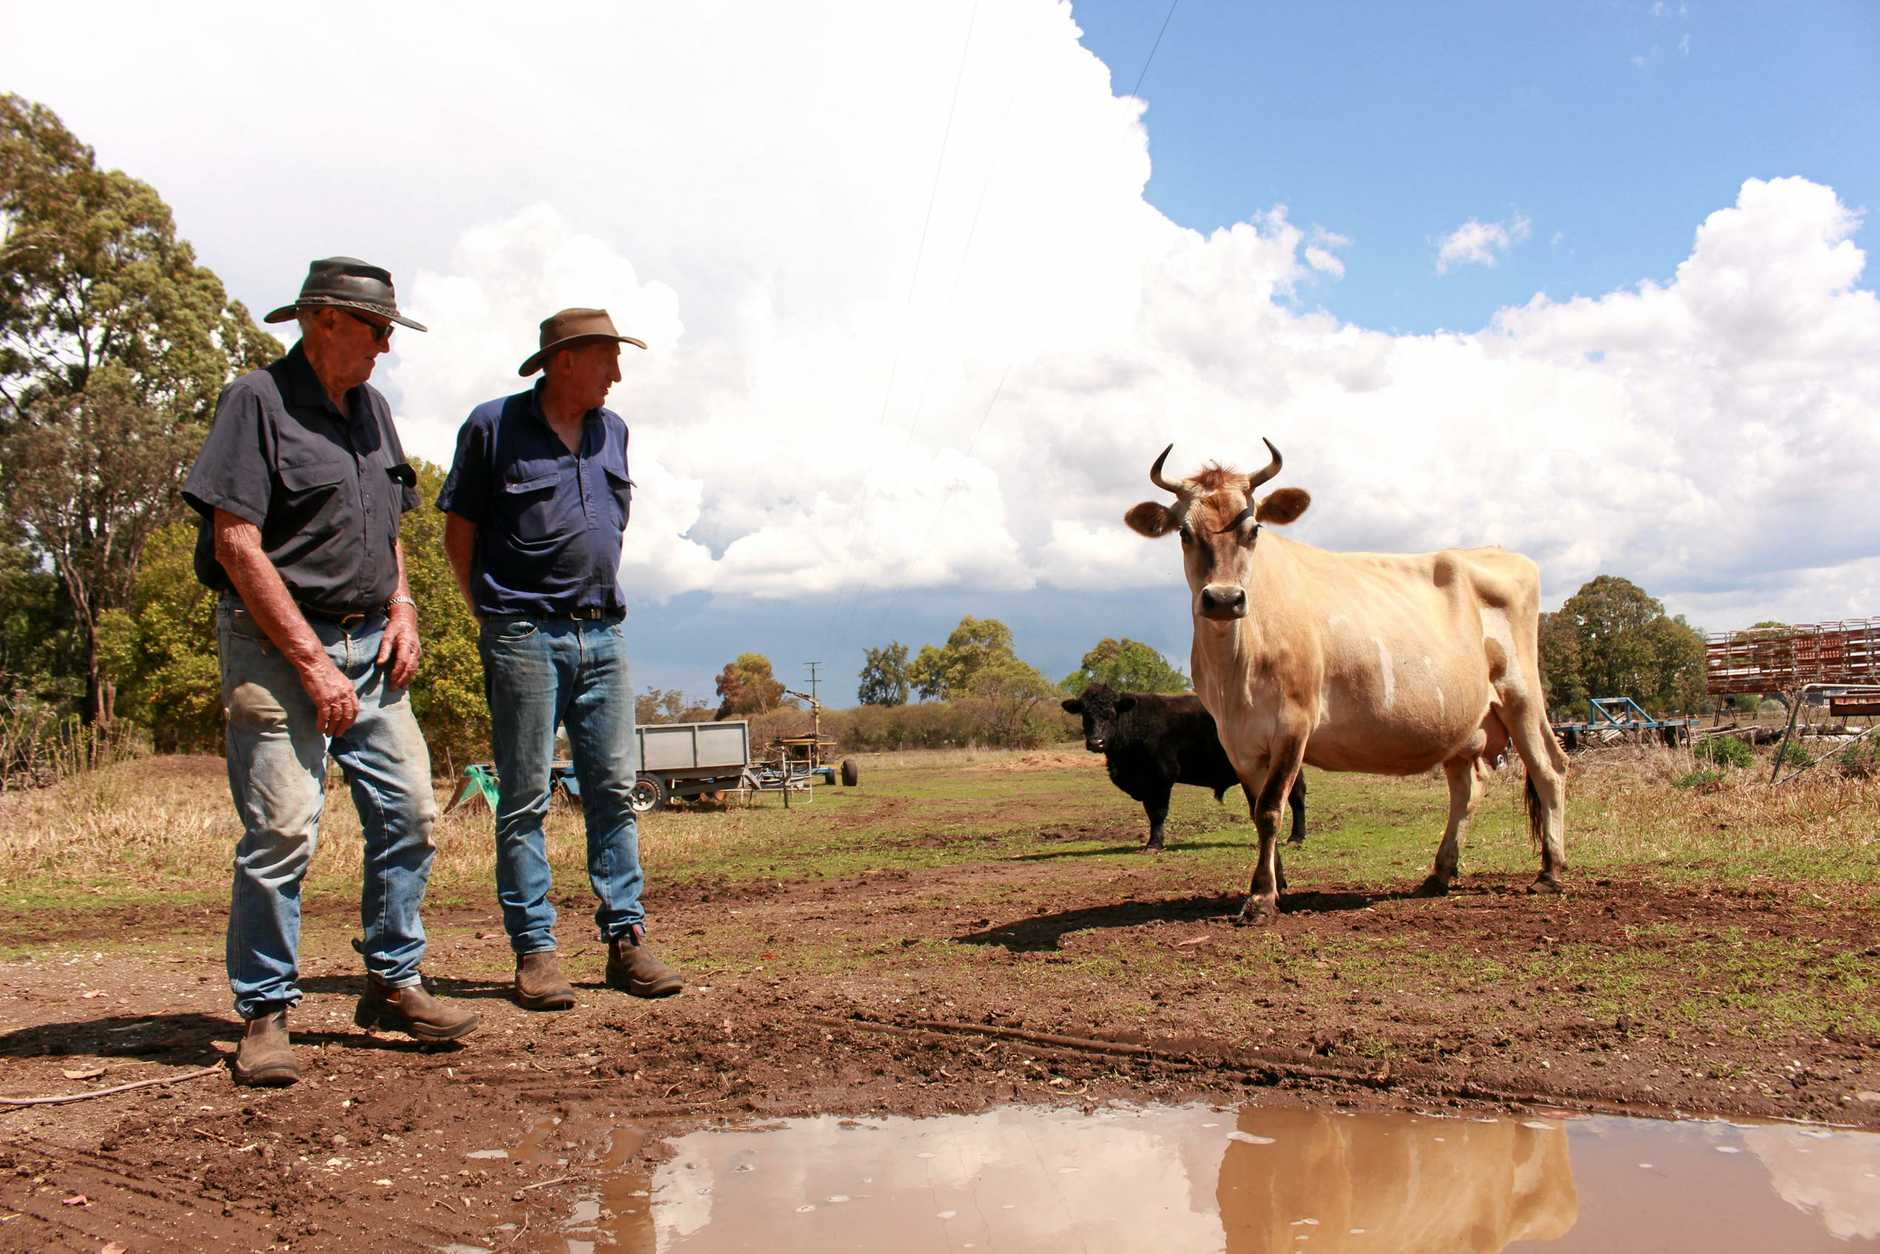 Lyle and Peter Grayson have been farming in Tannymorel for decades.